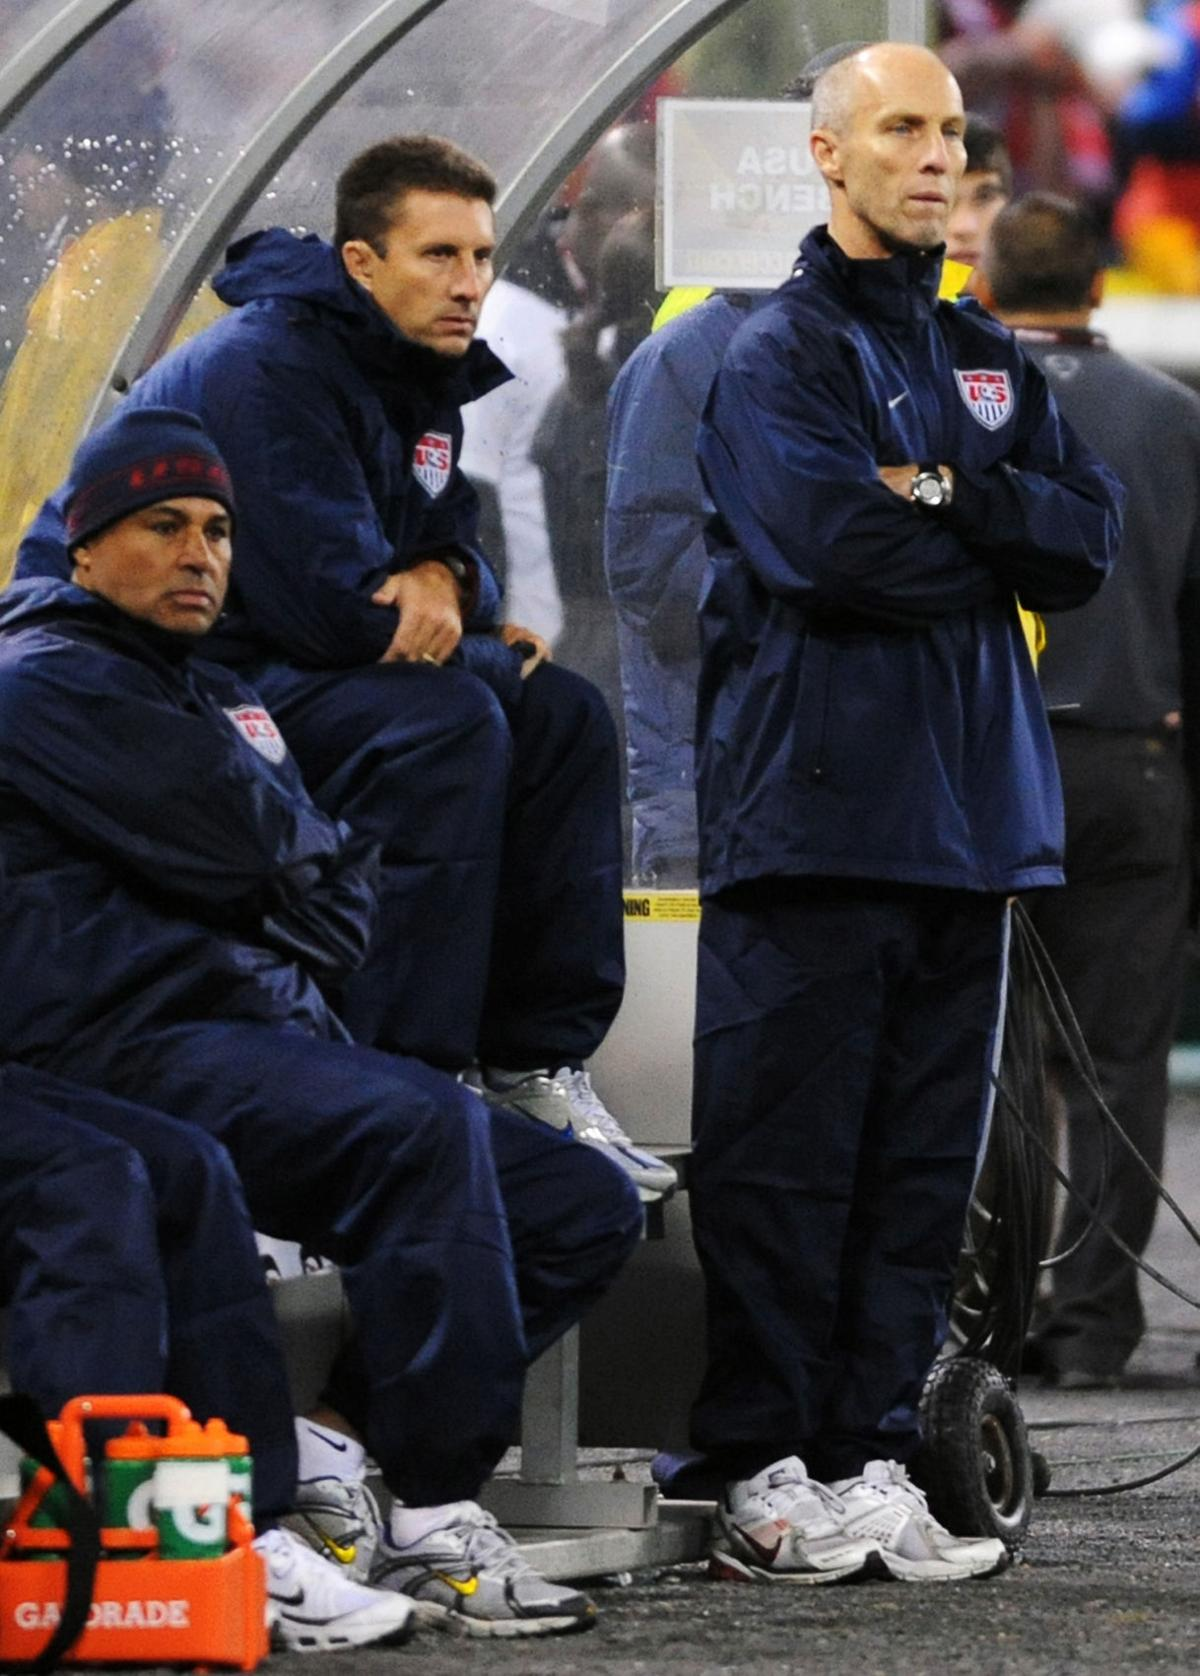 United States Men's National Team head coach Bob Bradley, right, watches his U.S. team play Costa Rica in a World Cup qualifying match at RFK Stadium in Washington, D.C., Wednesday, Oct. 14, 2009.